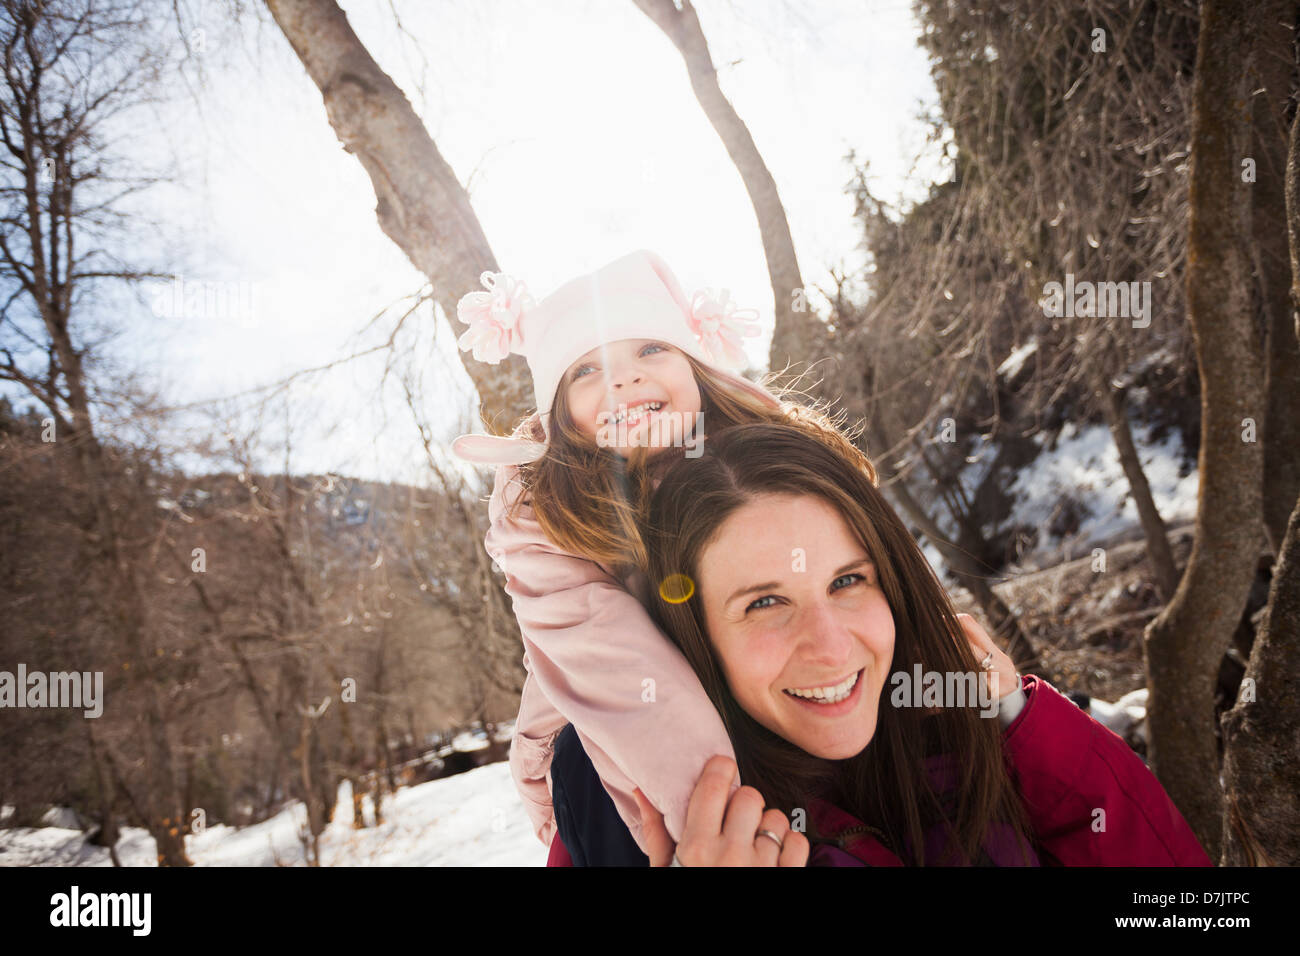 USA, Utah, Highland, Young woman carrying her daughter (2-3) on shoulders - Stock Image